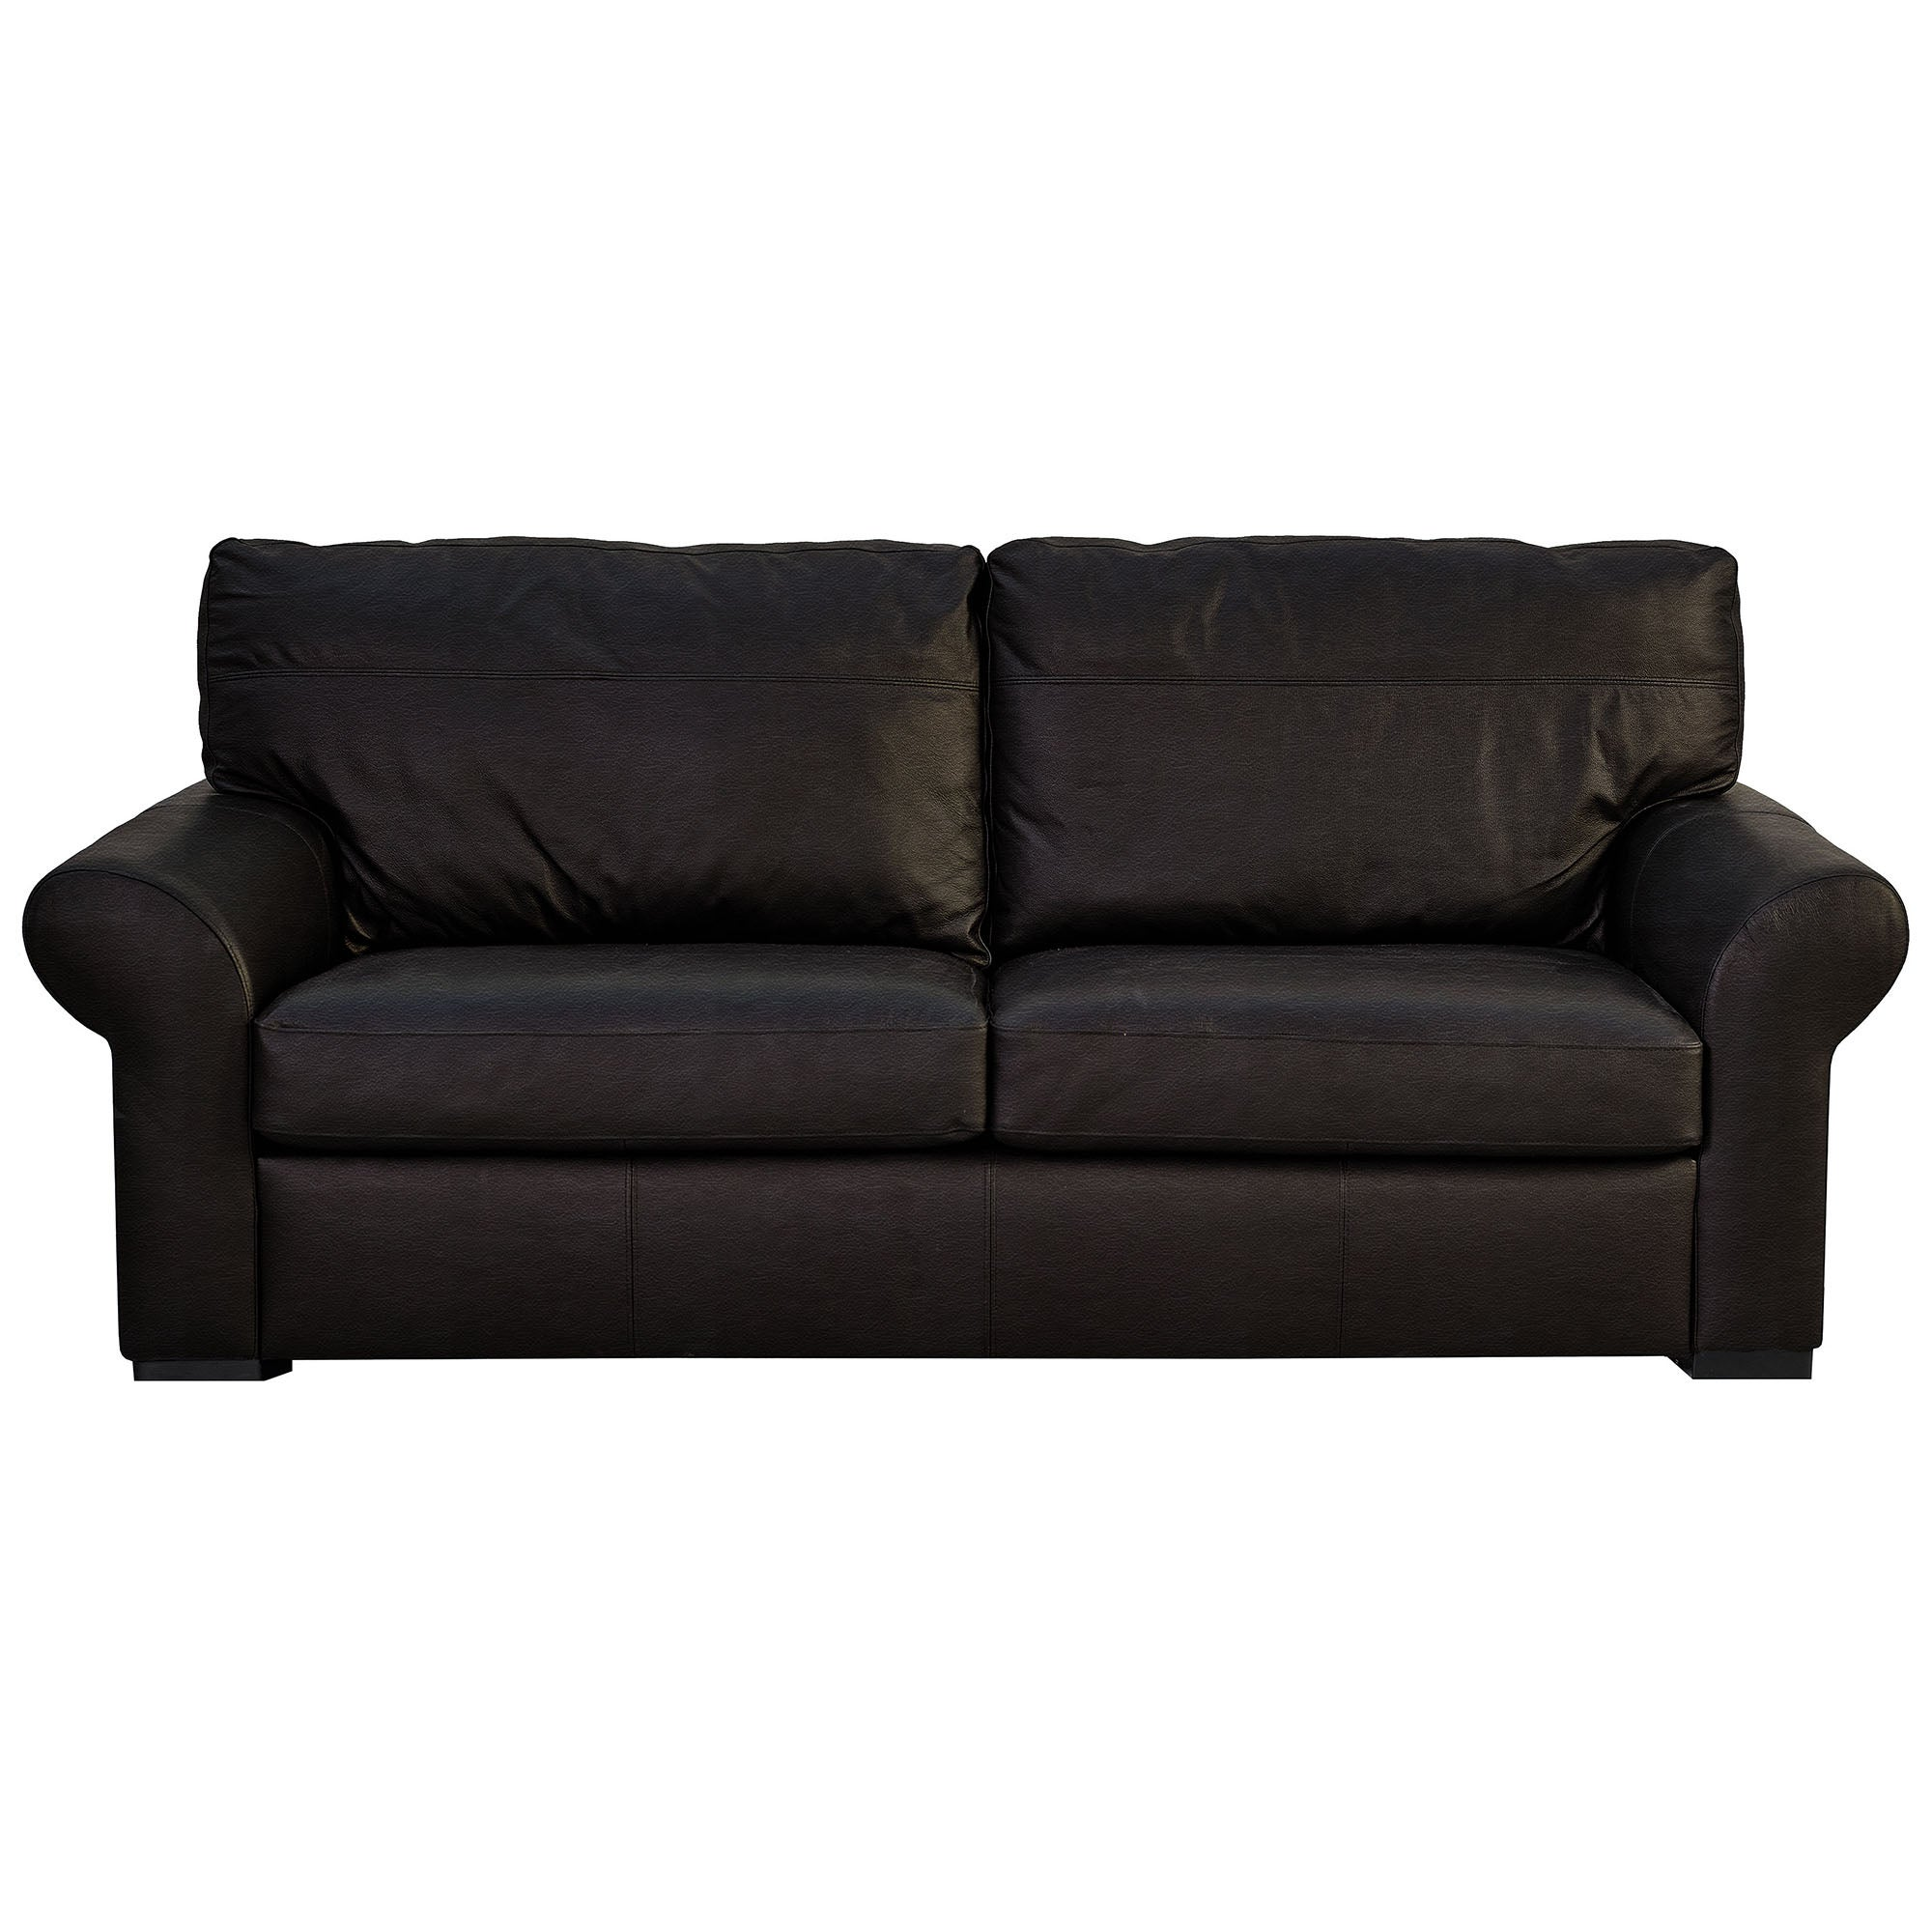 Finchley Collection Madras Large Leather Sofa